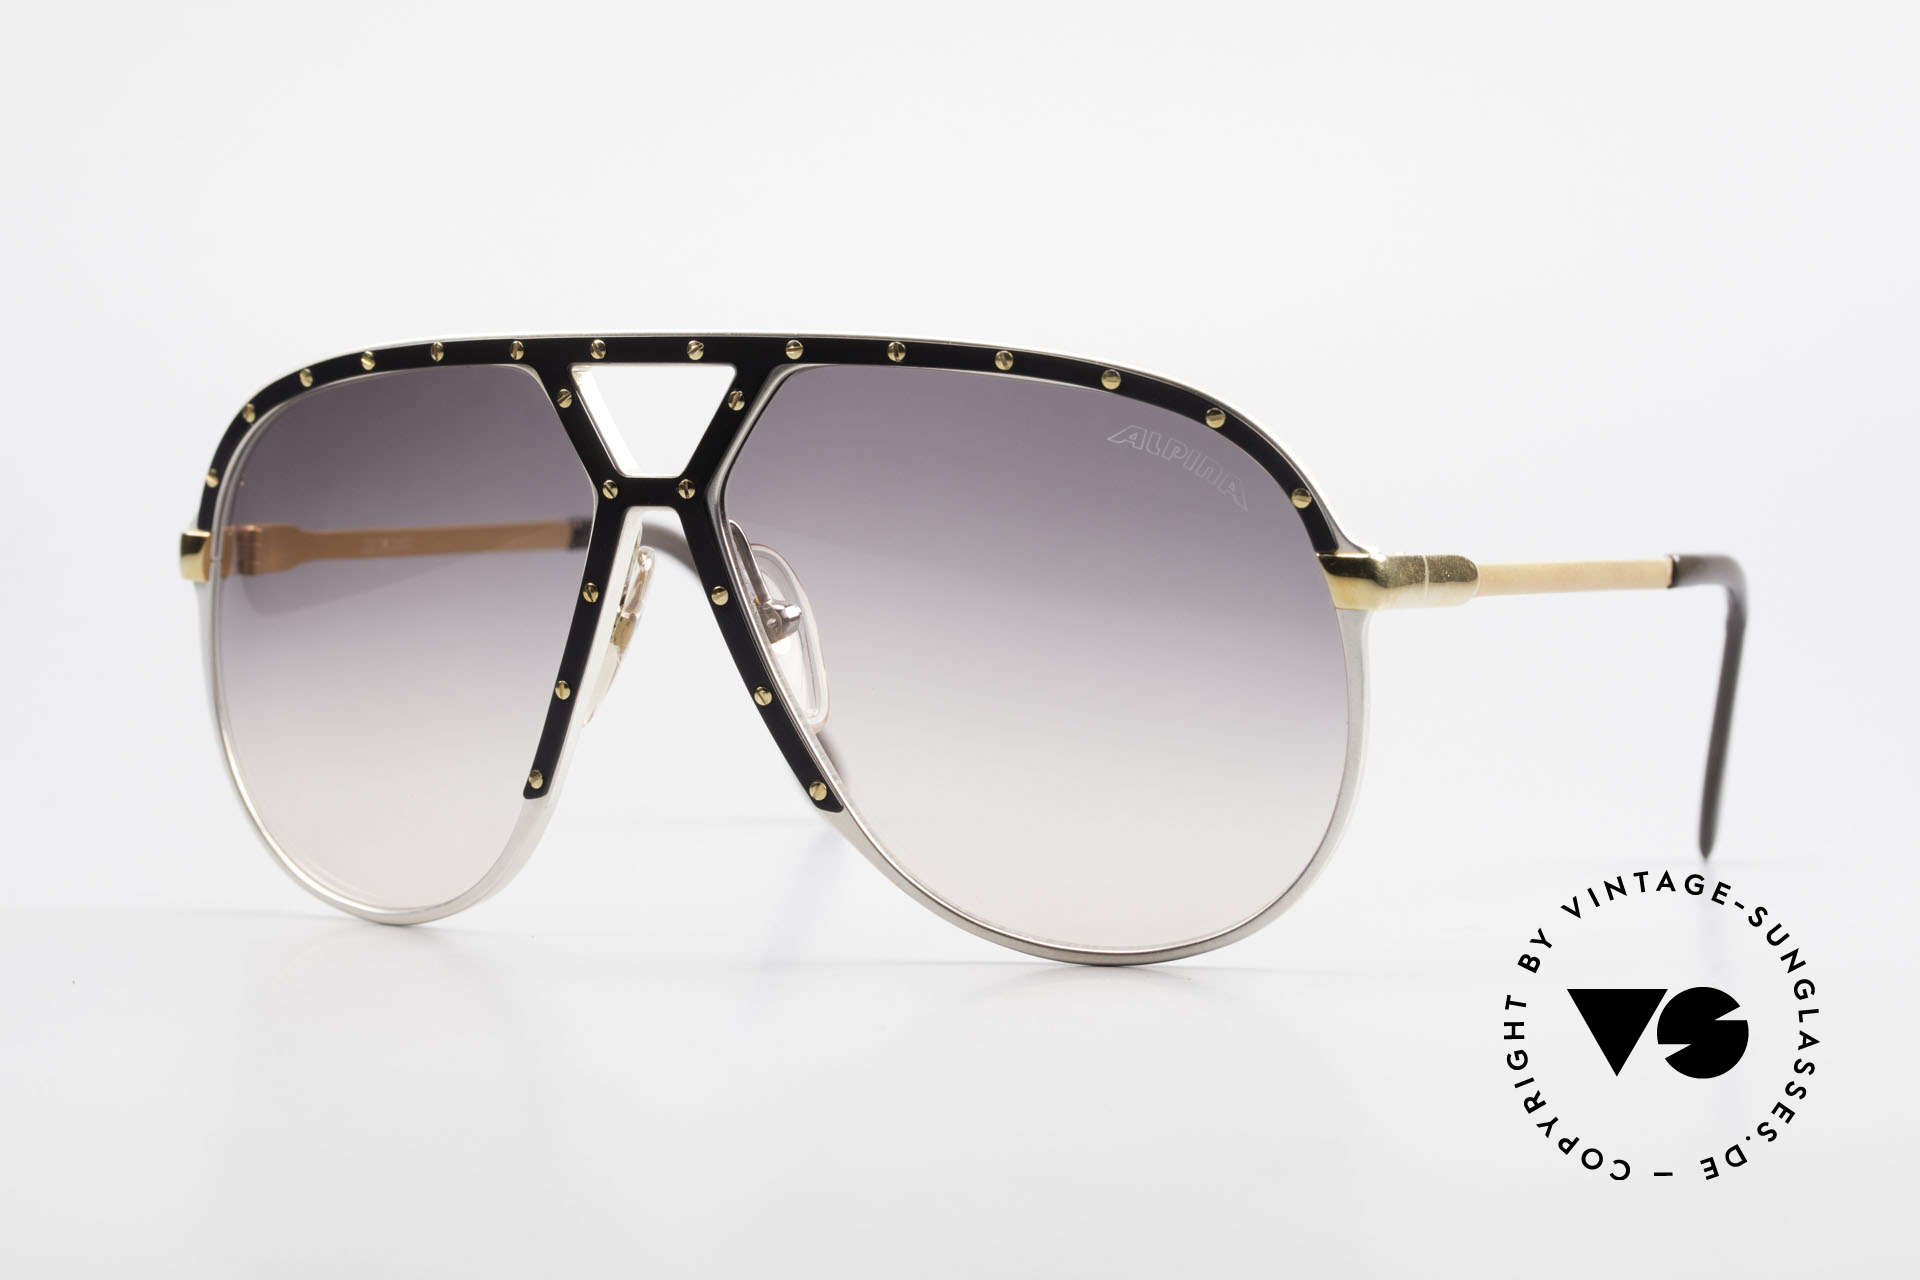 Alpina M1 Stevie Wonder 80's Sunglasses, legendary Alpina M1 vintage sunglasses from 1986, Made for Men